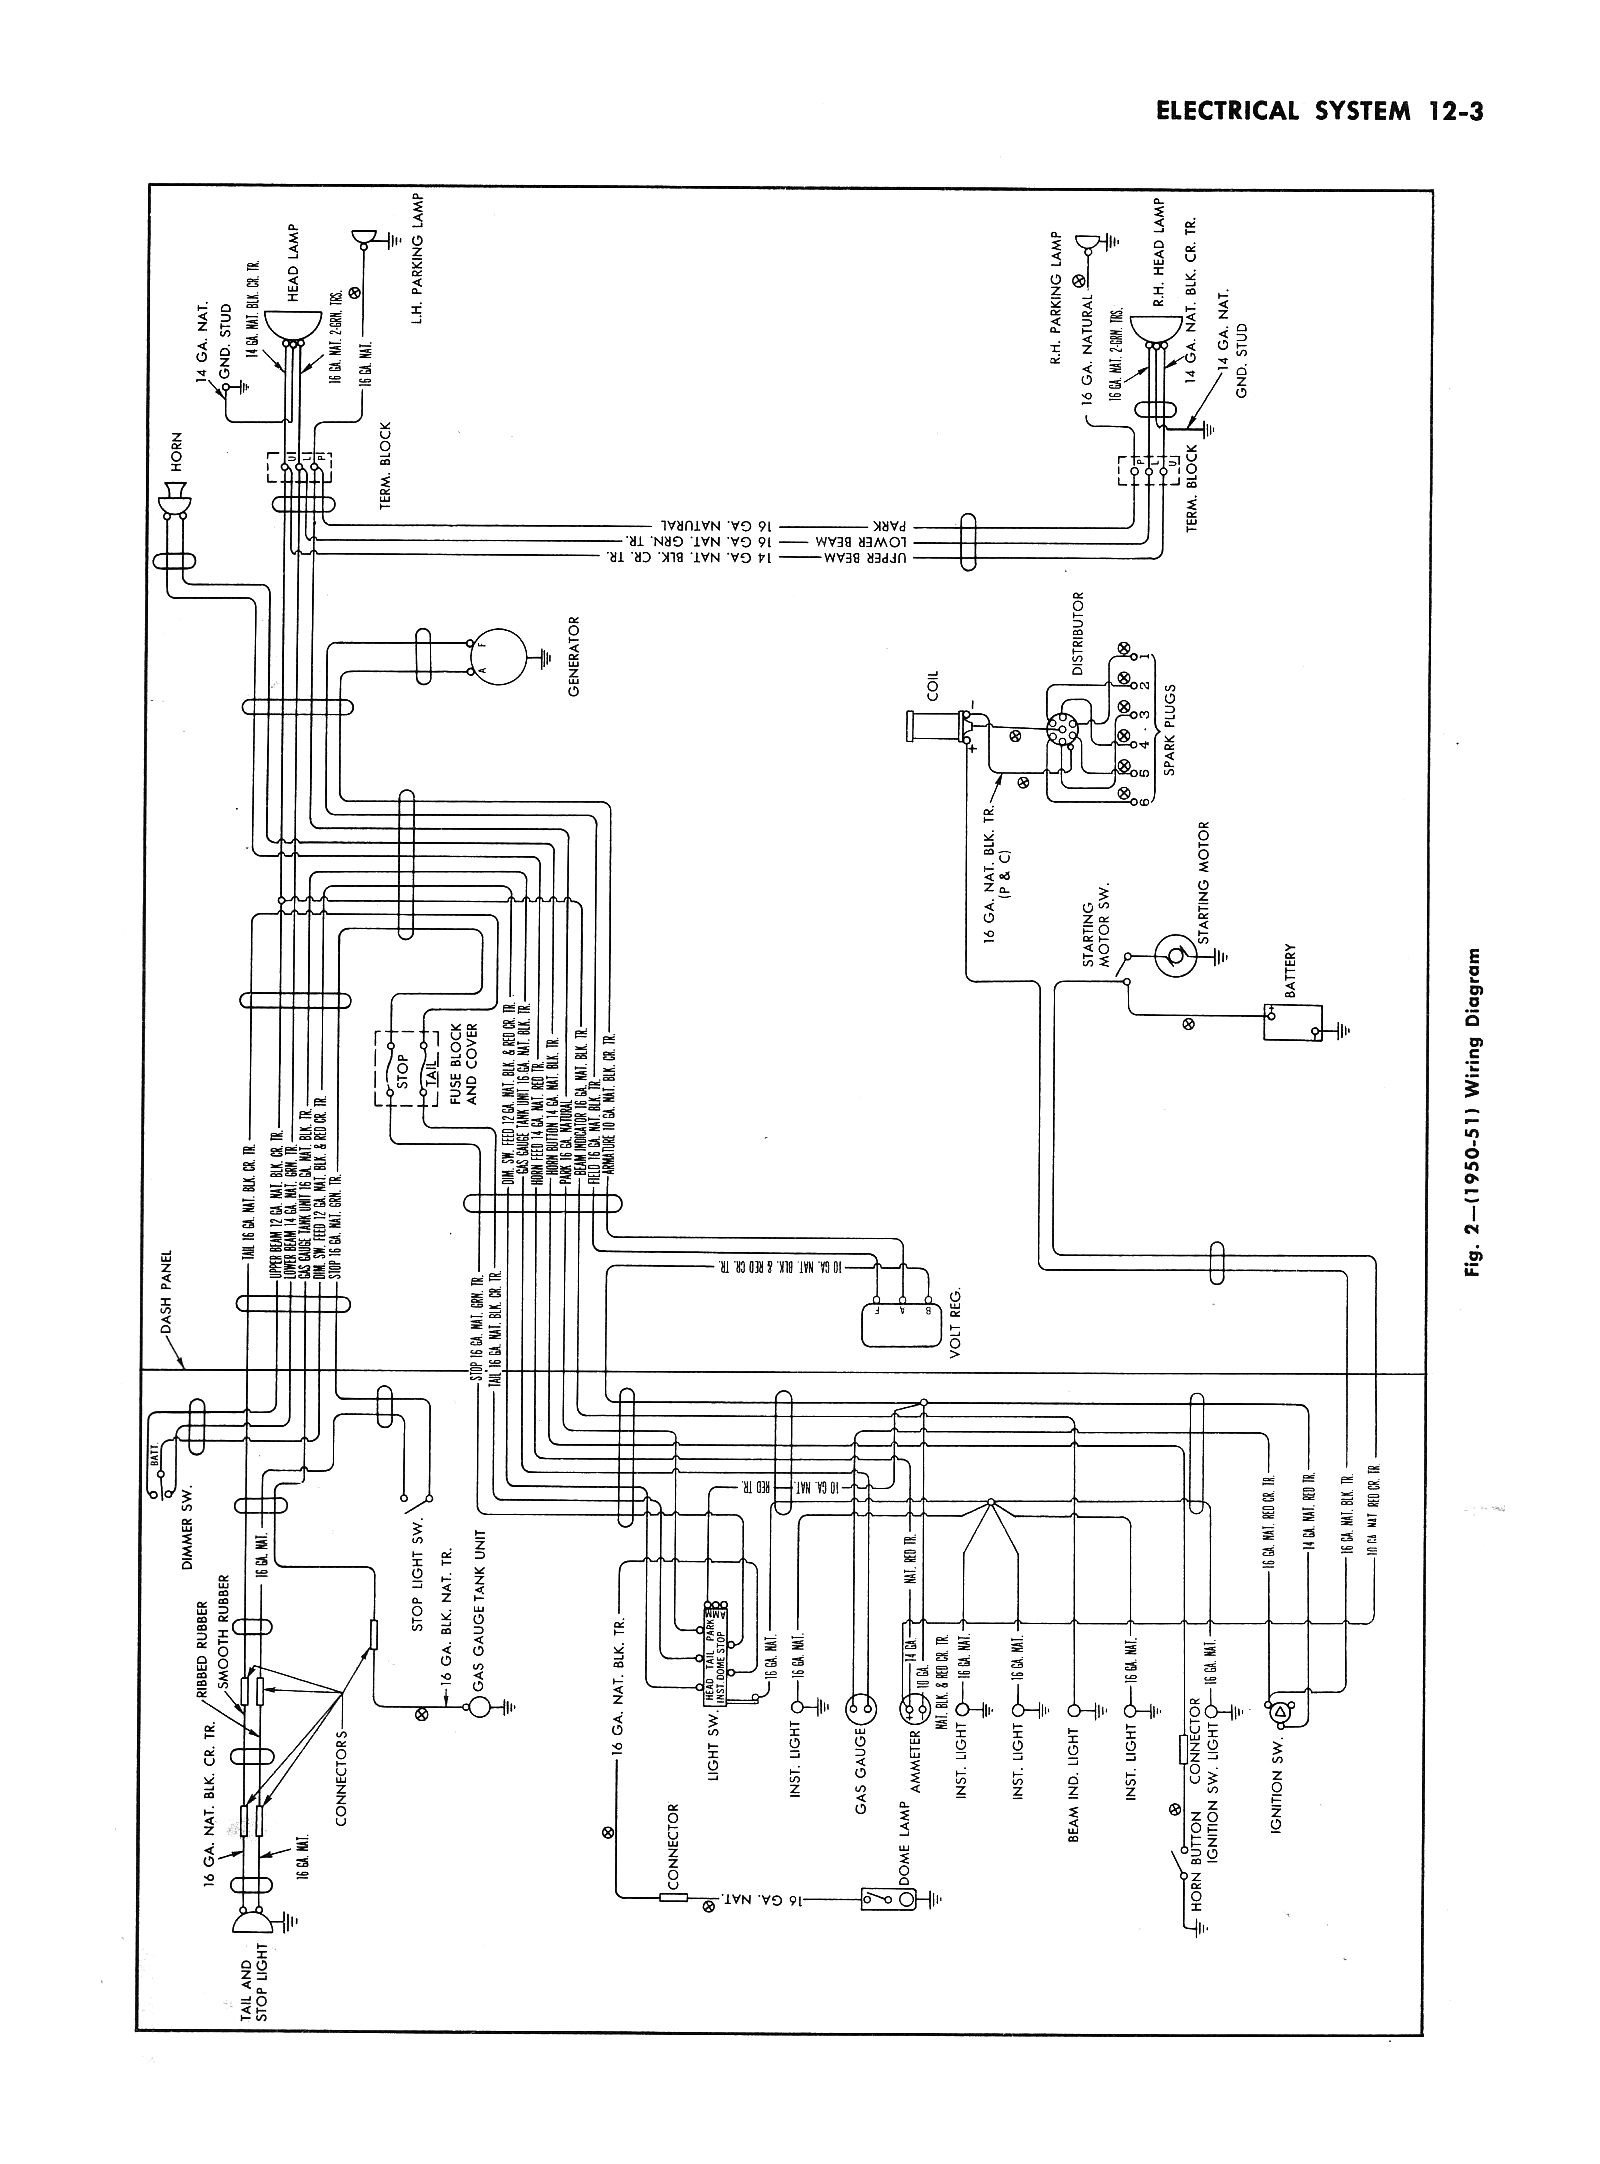 1948 chevrolet wiring diagram example electrical wiring diagram u2022 rh cranejapan co 2000 Chevy 3500 Wiring Diagram 86 Chevy Truck Wiring Diagram